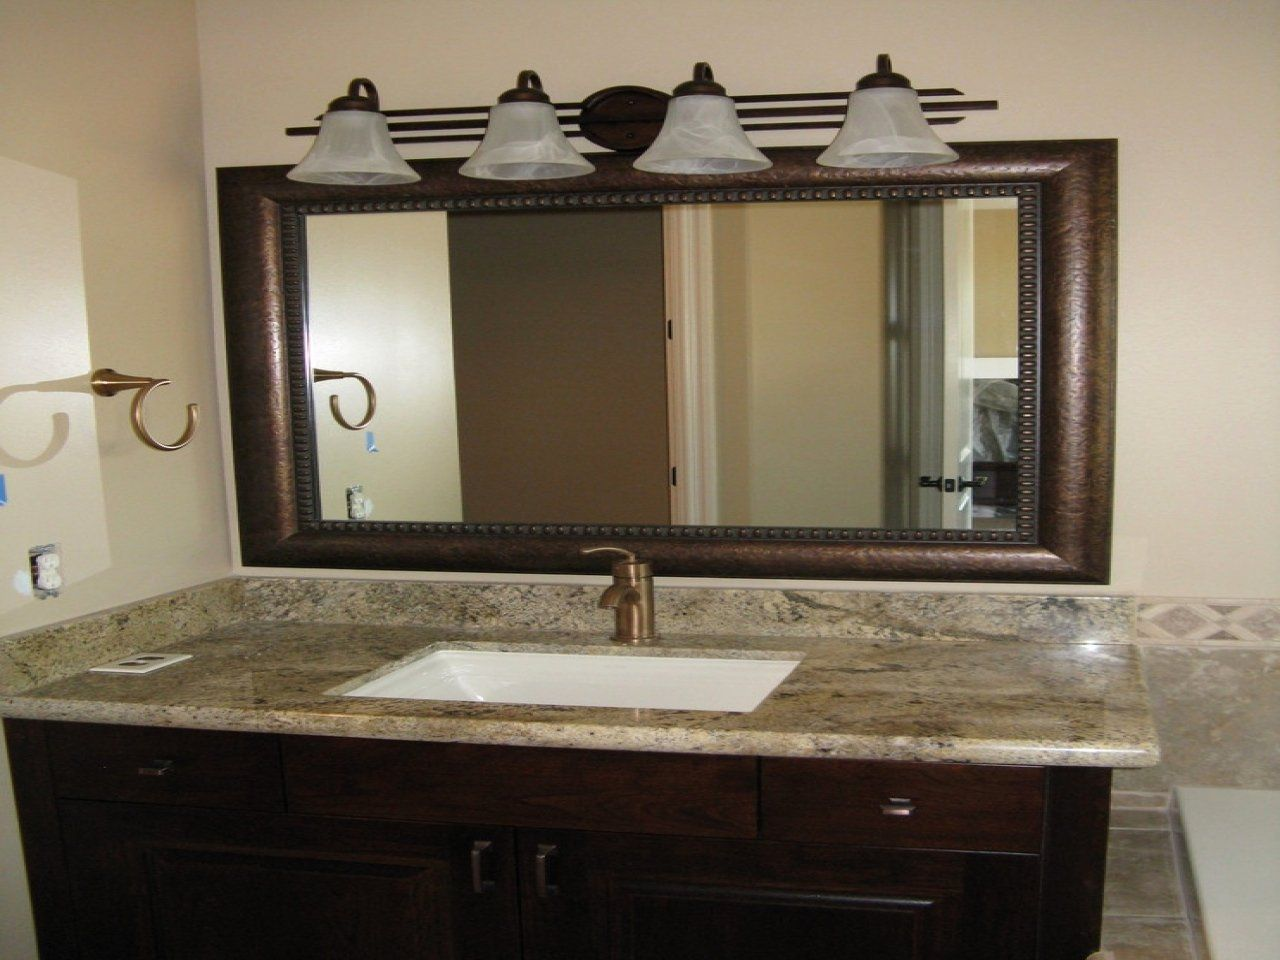 24 Unique Bathroom Mirror Frame Ideas In 2020 With Images